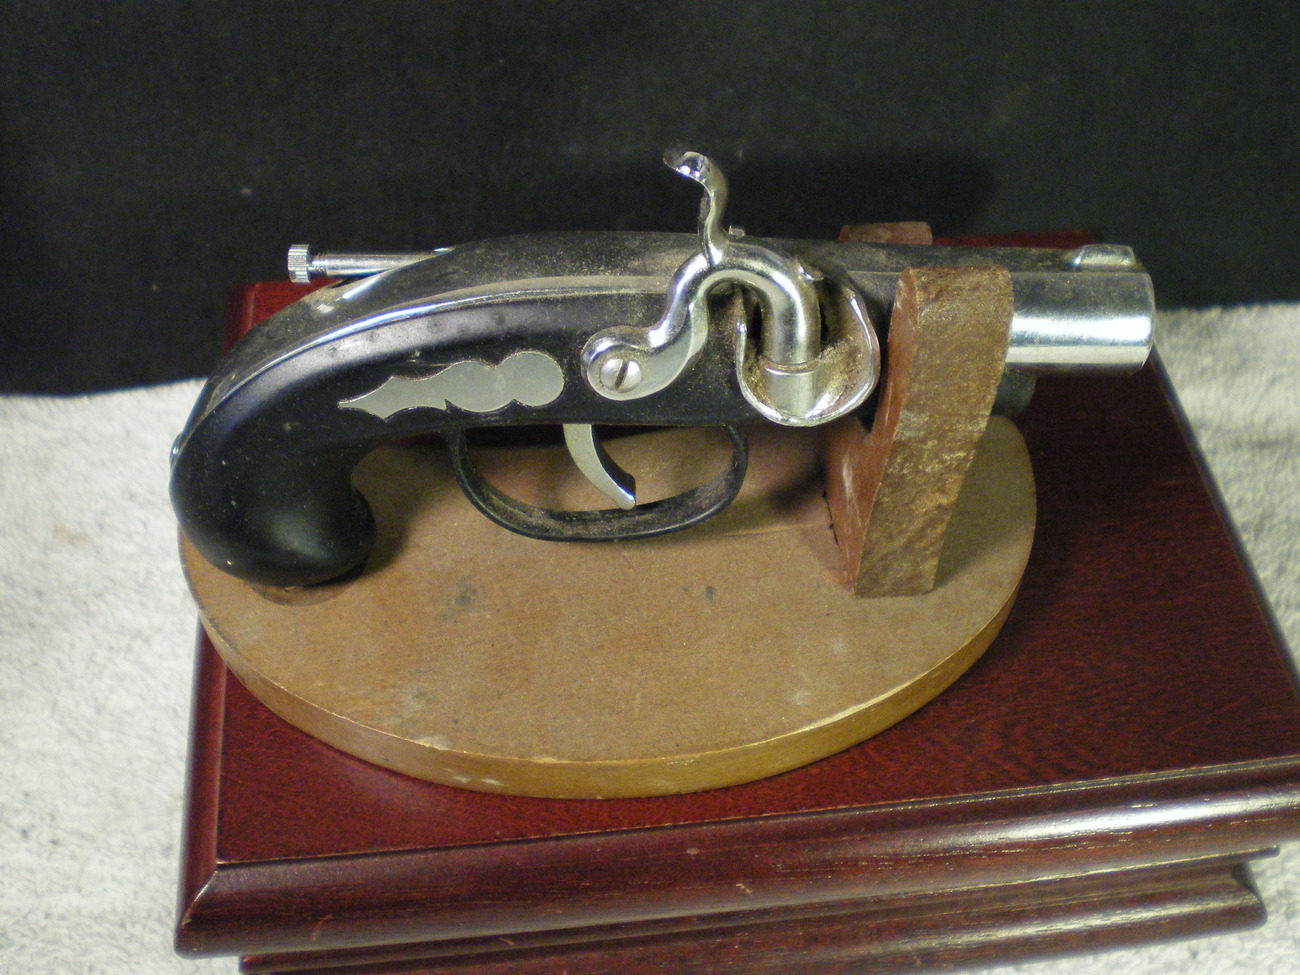 VINTAGE PISTOL CIGARETTE LIGHTER WITH STAND~~~COOL ONE